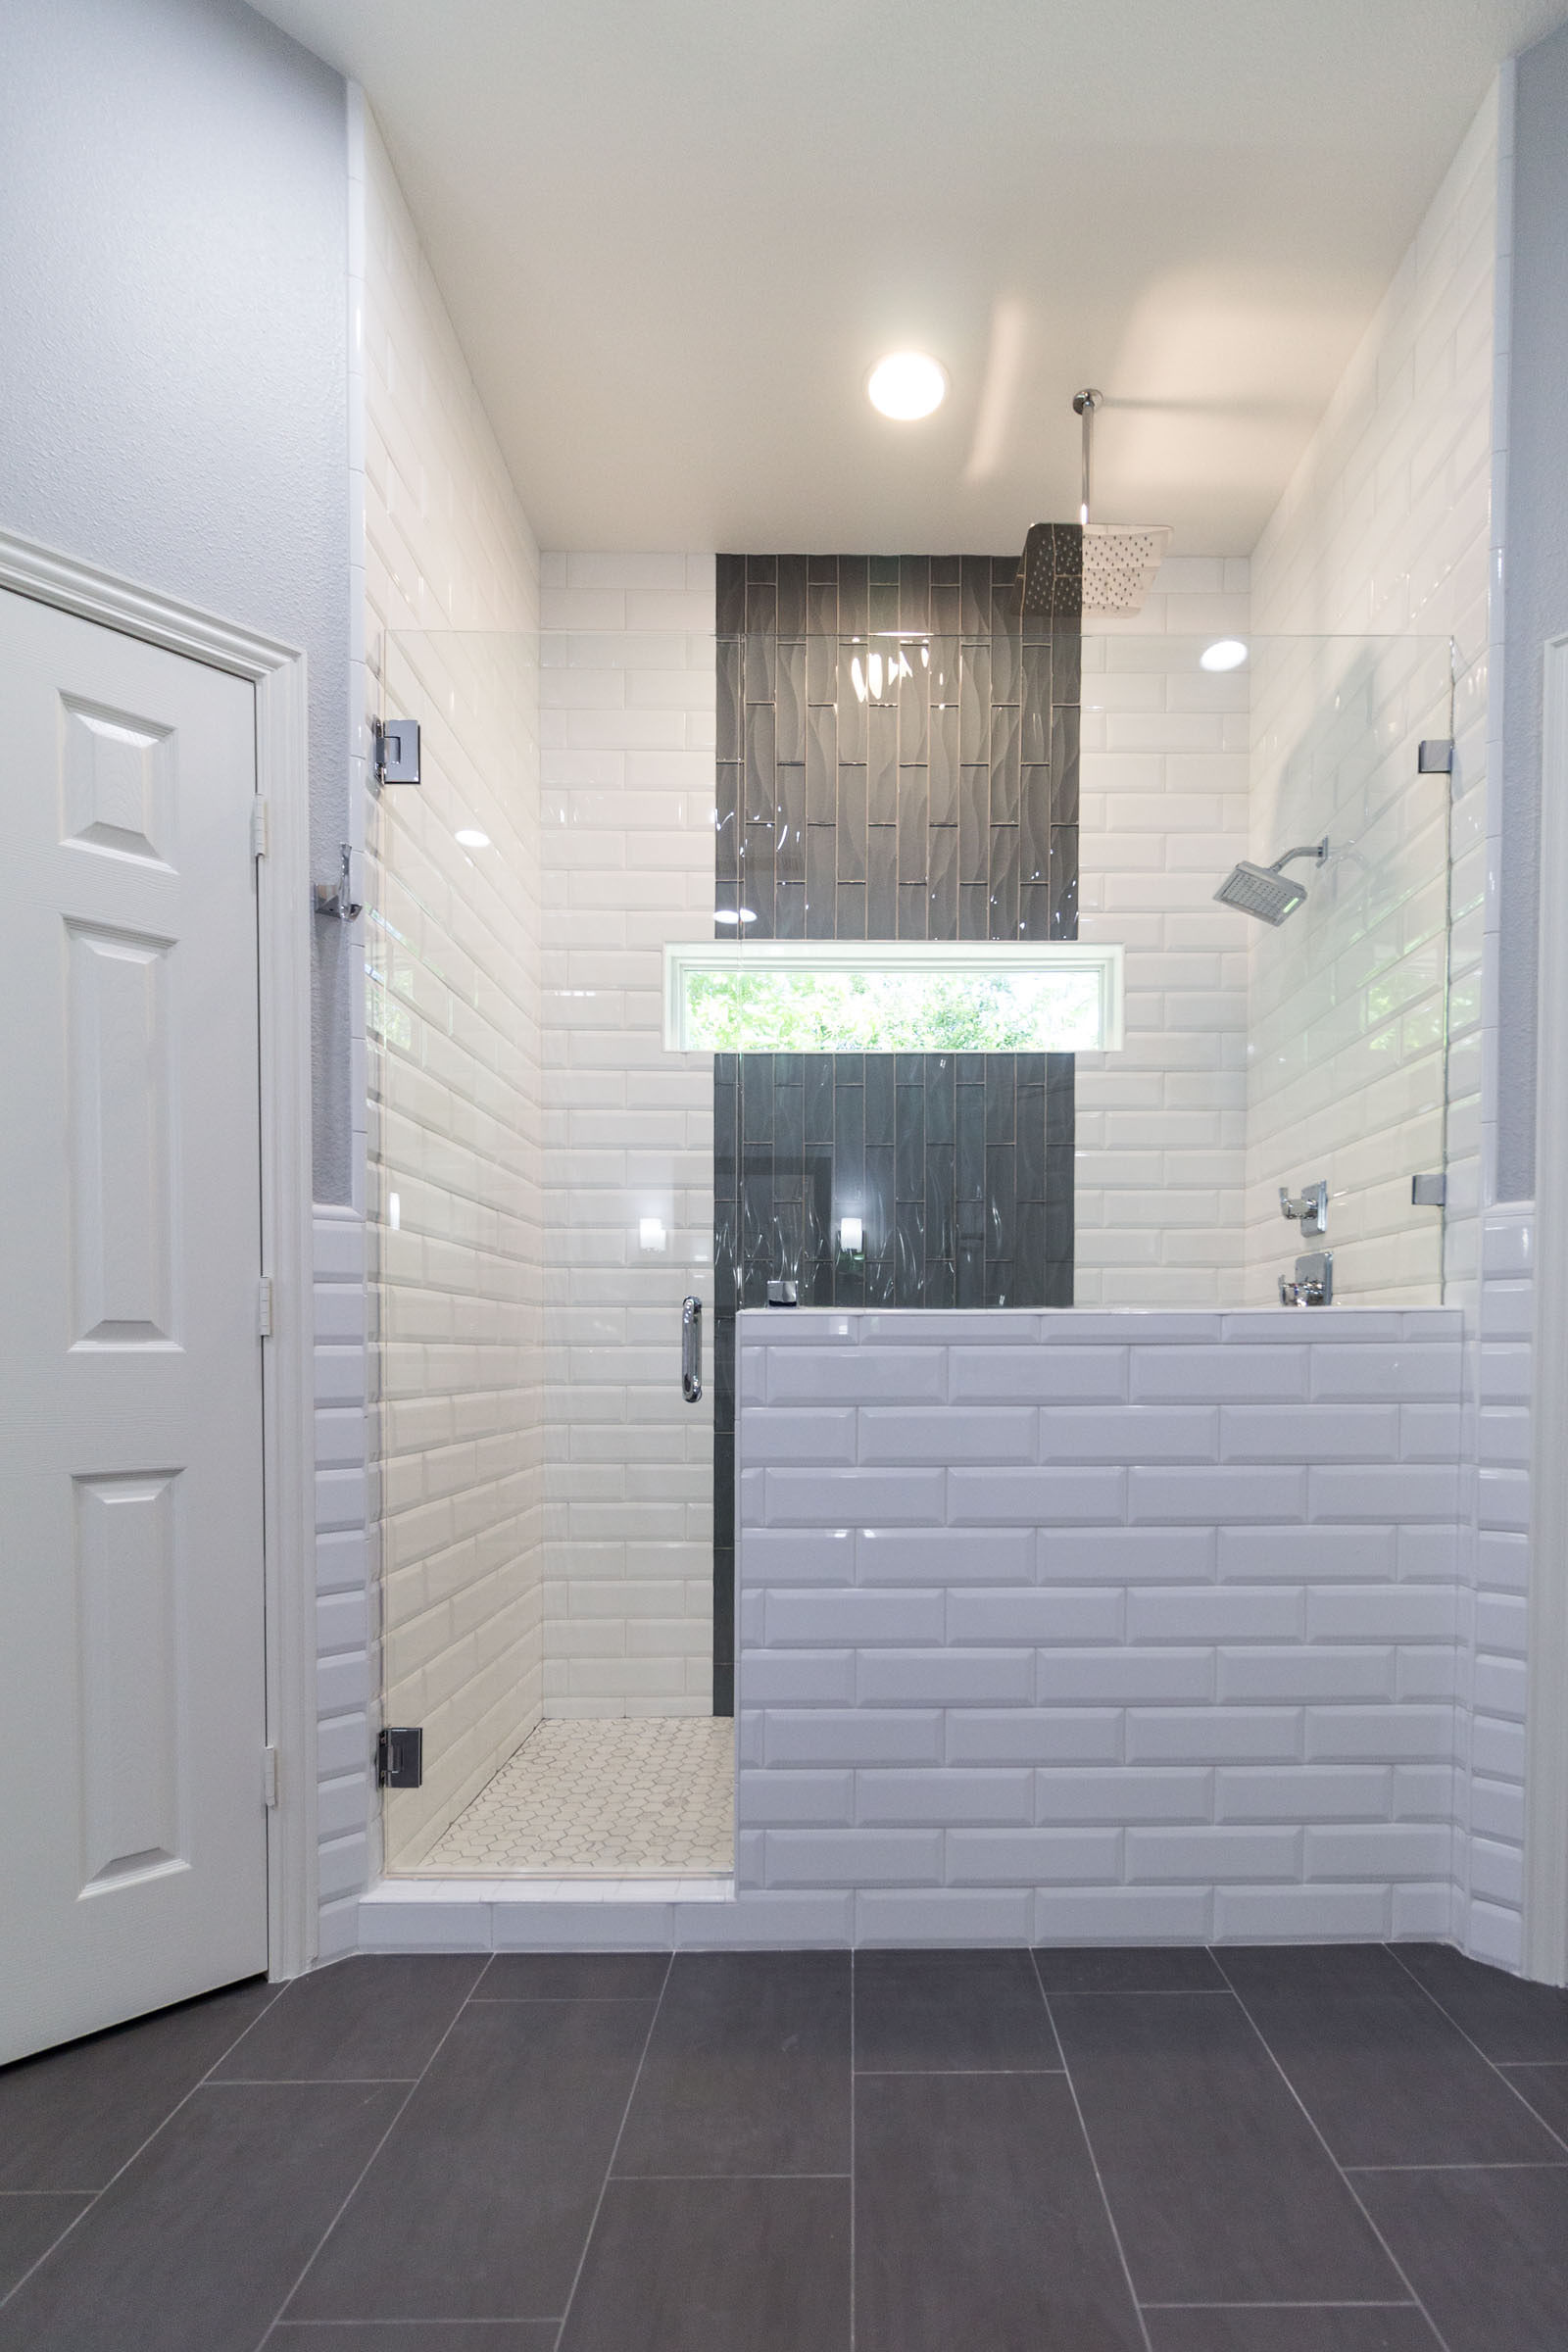 Bathroom remodel with white subway tile and walk in shower